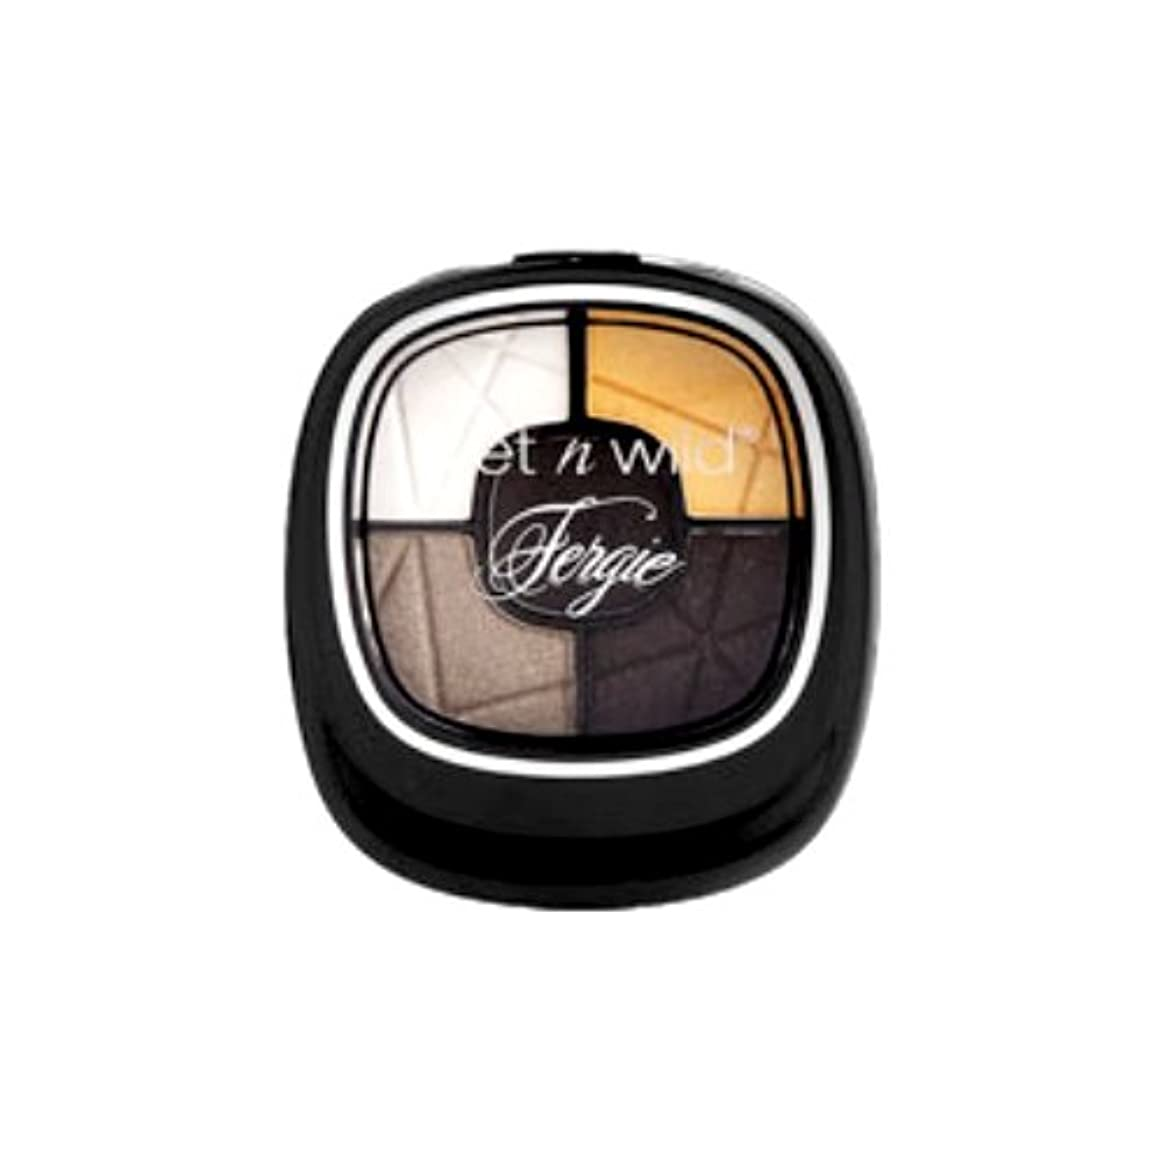 法王ご覧ください民族主義Wet N Wild FERGIE Photo Op Eyeshadow - Metropolitan Lights (並行輸入品)